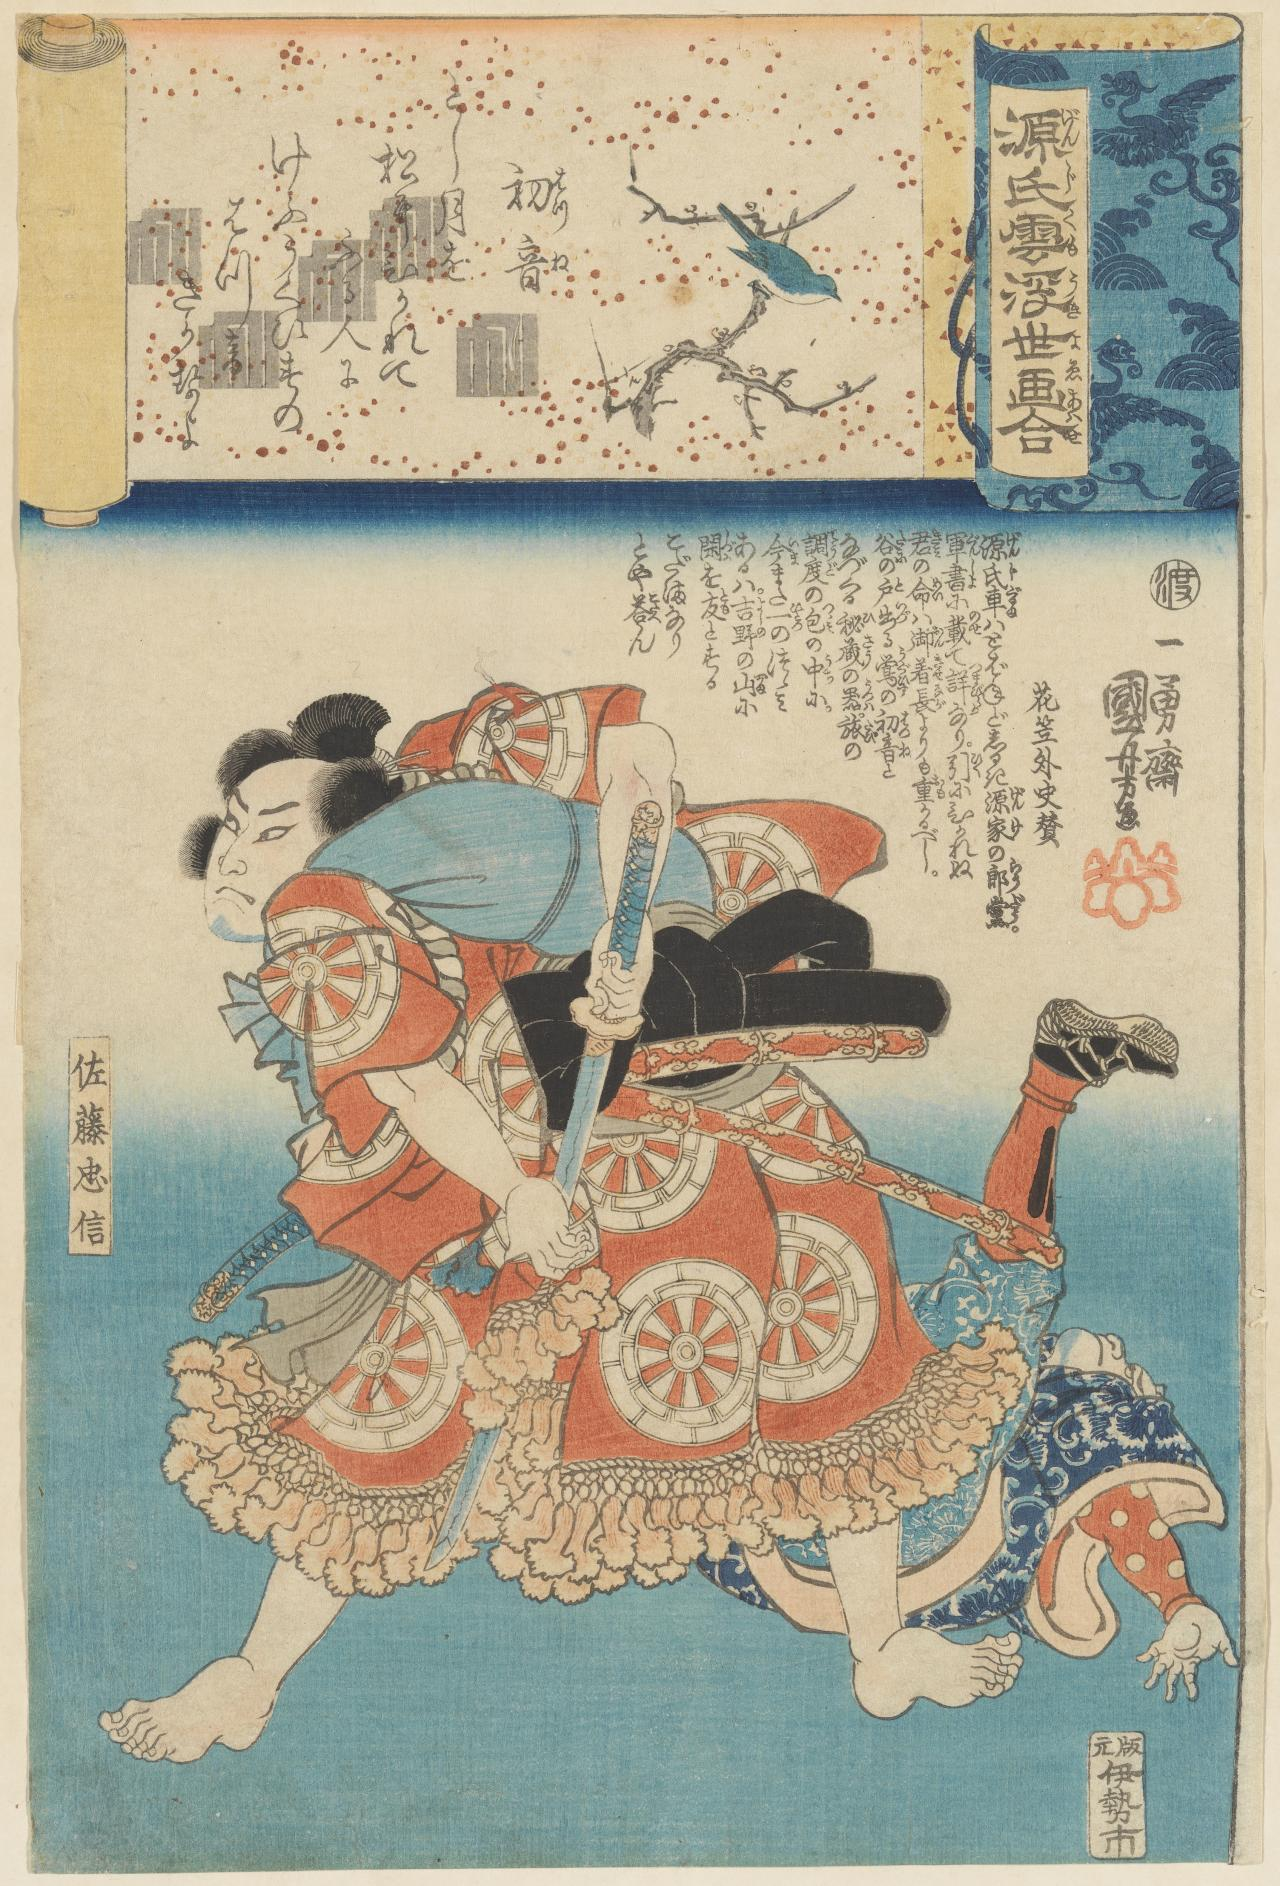 Hatsune, (Chapter 23, First Warbler), Ukiyo-e comparisons for the cloudy chapters of the Tale of Genji, Genji kumo ukiyoe awase